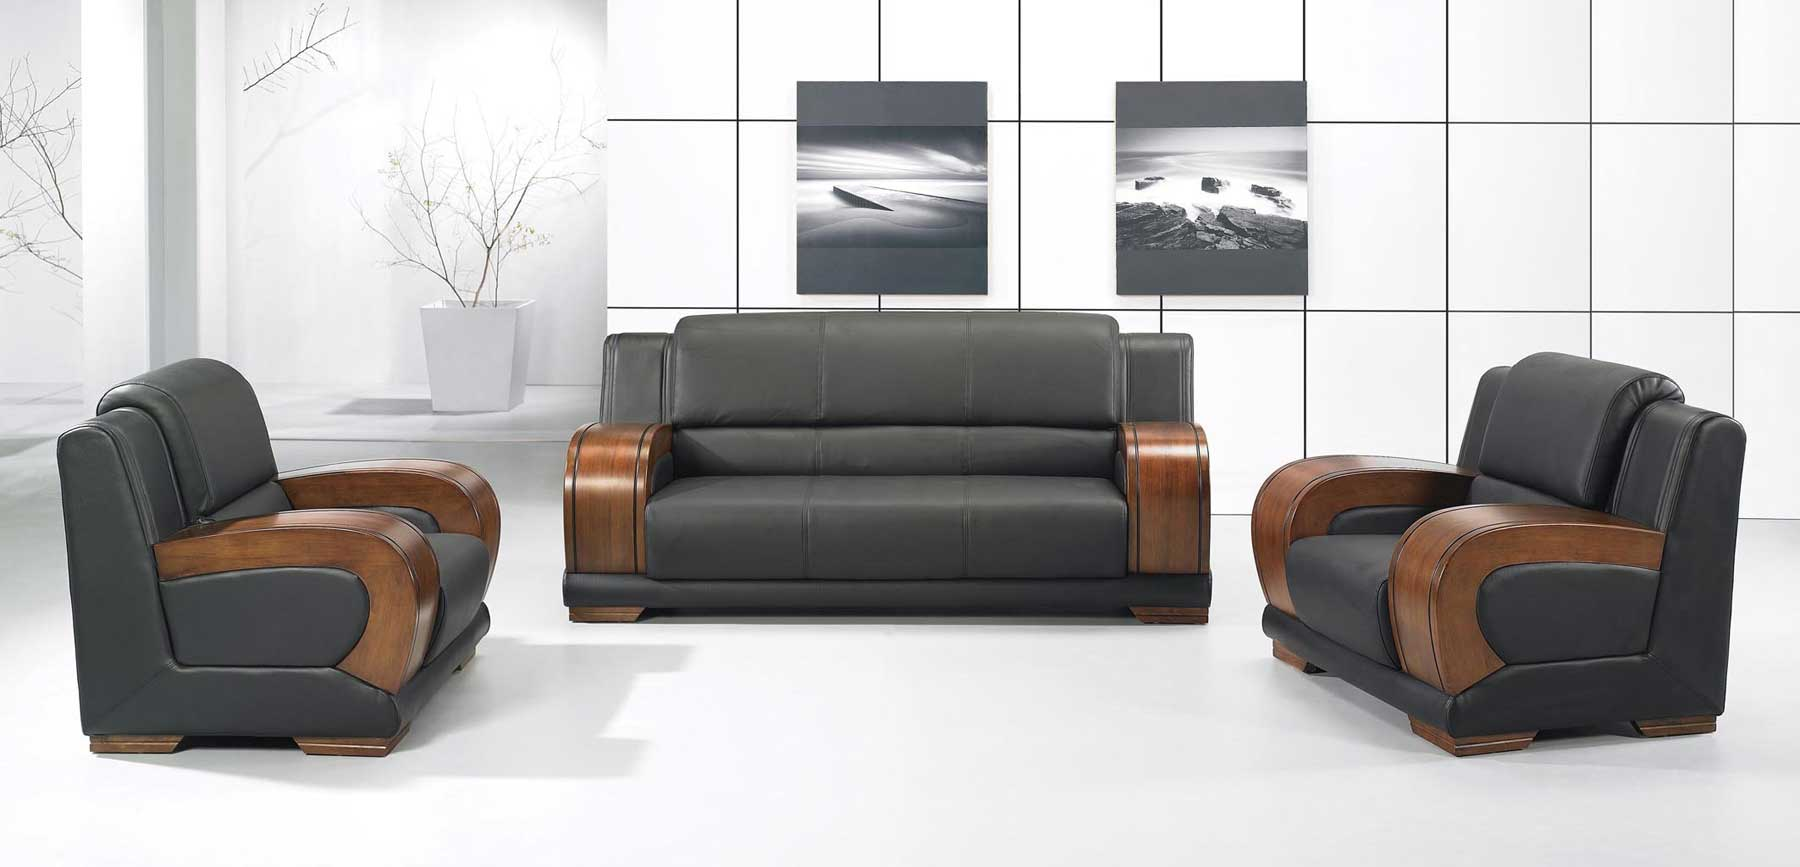 modern office sofa with wooden arms design